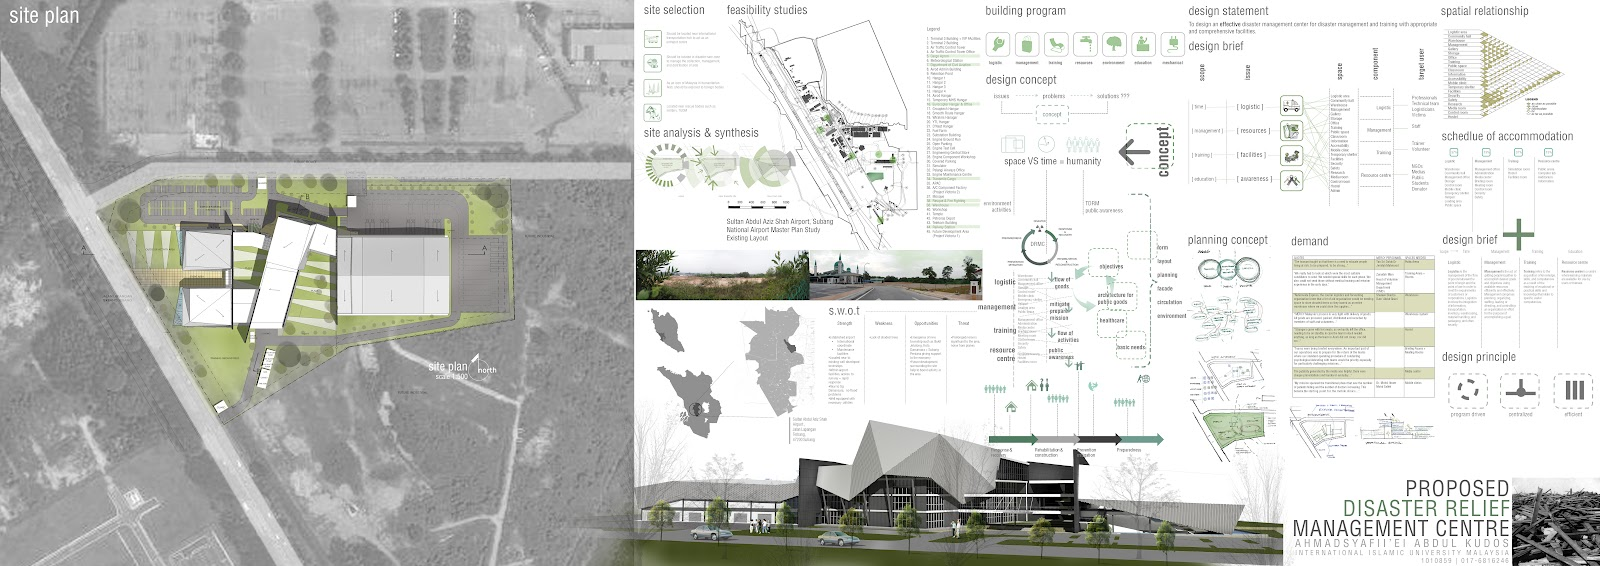 Piei S Portfolio Proposed Disaster Relief Management Centre